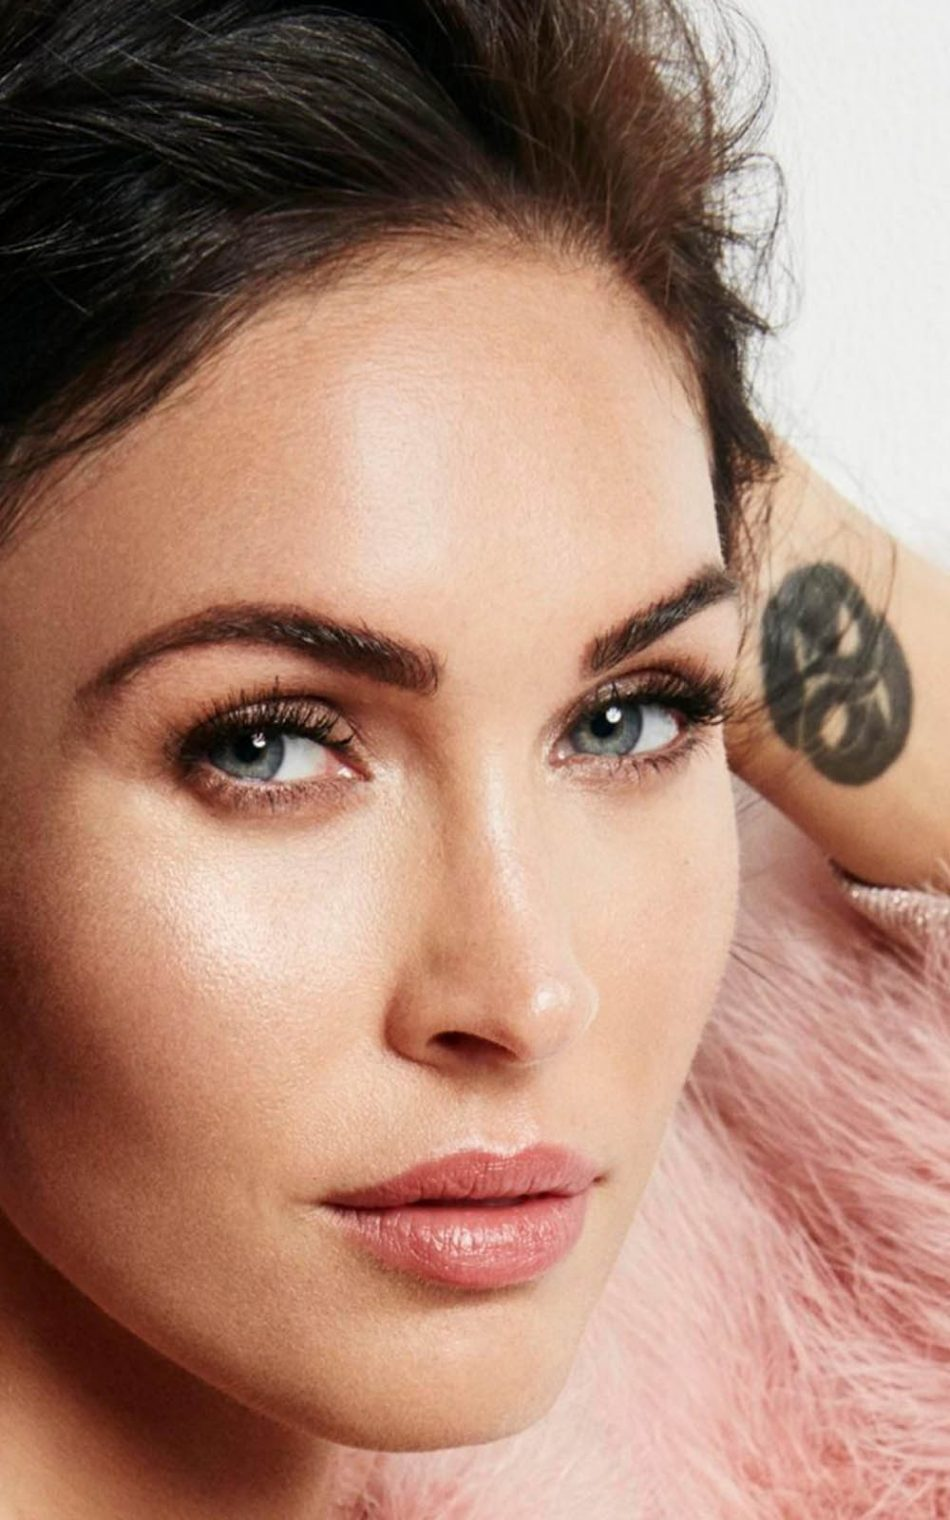 megan fox cosmopolitan 2017 photoshoot - download free 100% pure hd